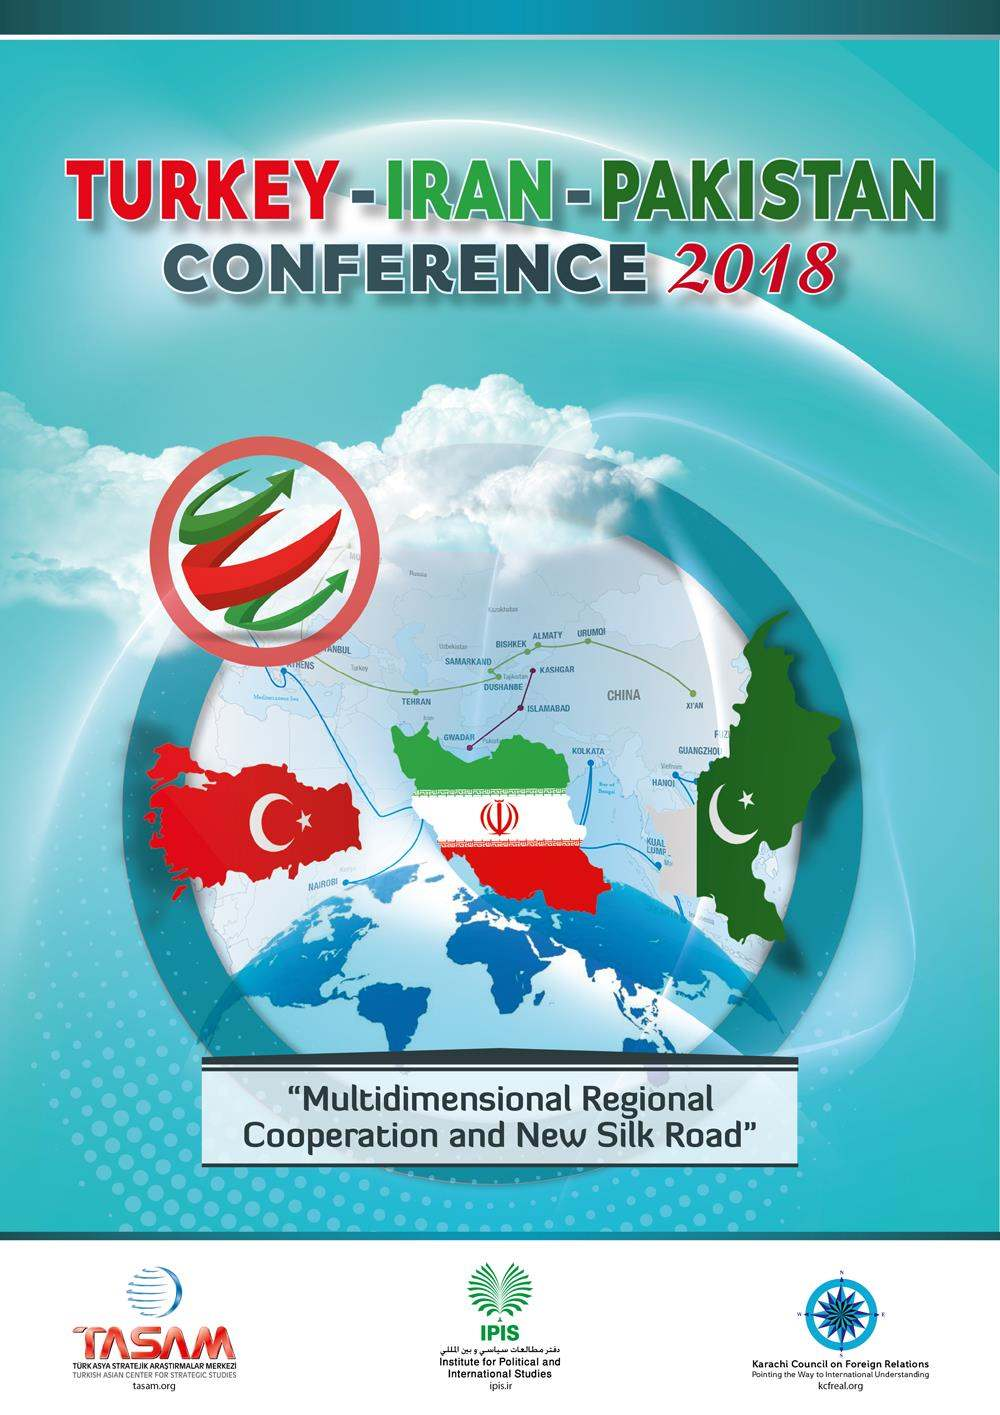 Turkey - Iran - Pakistan Conference 2018